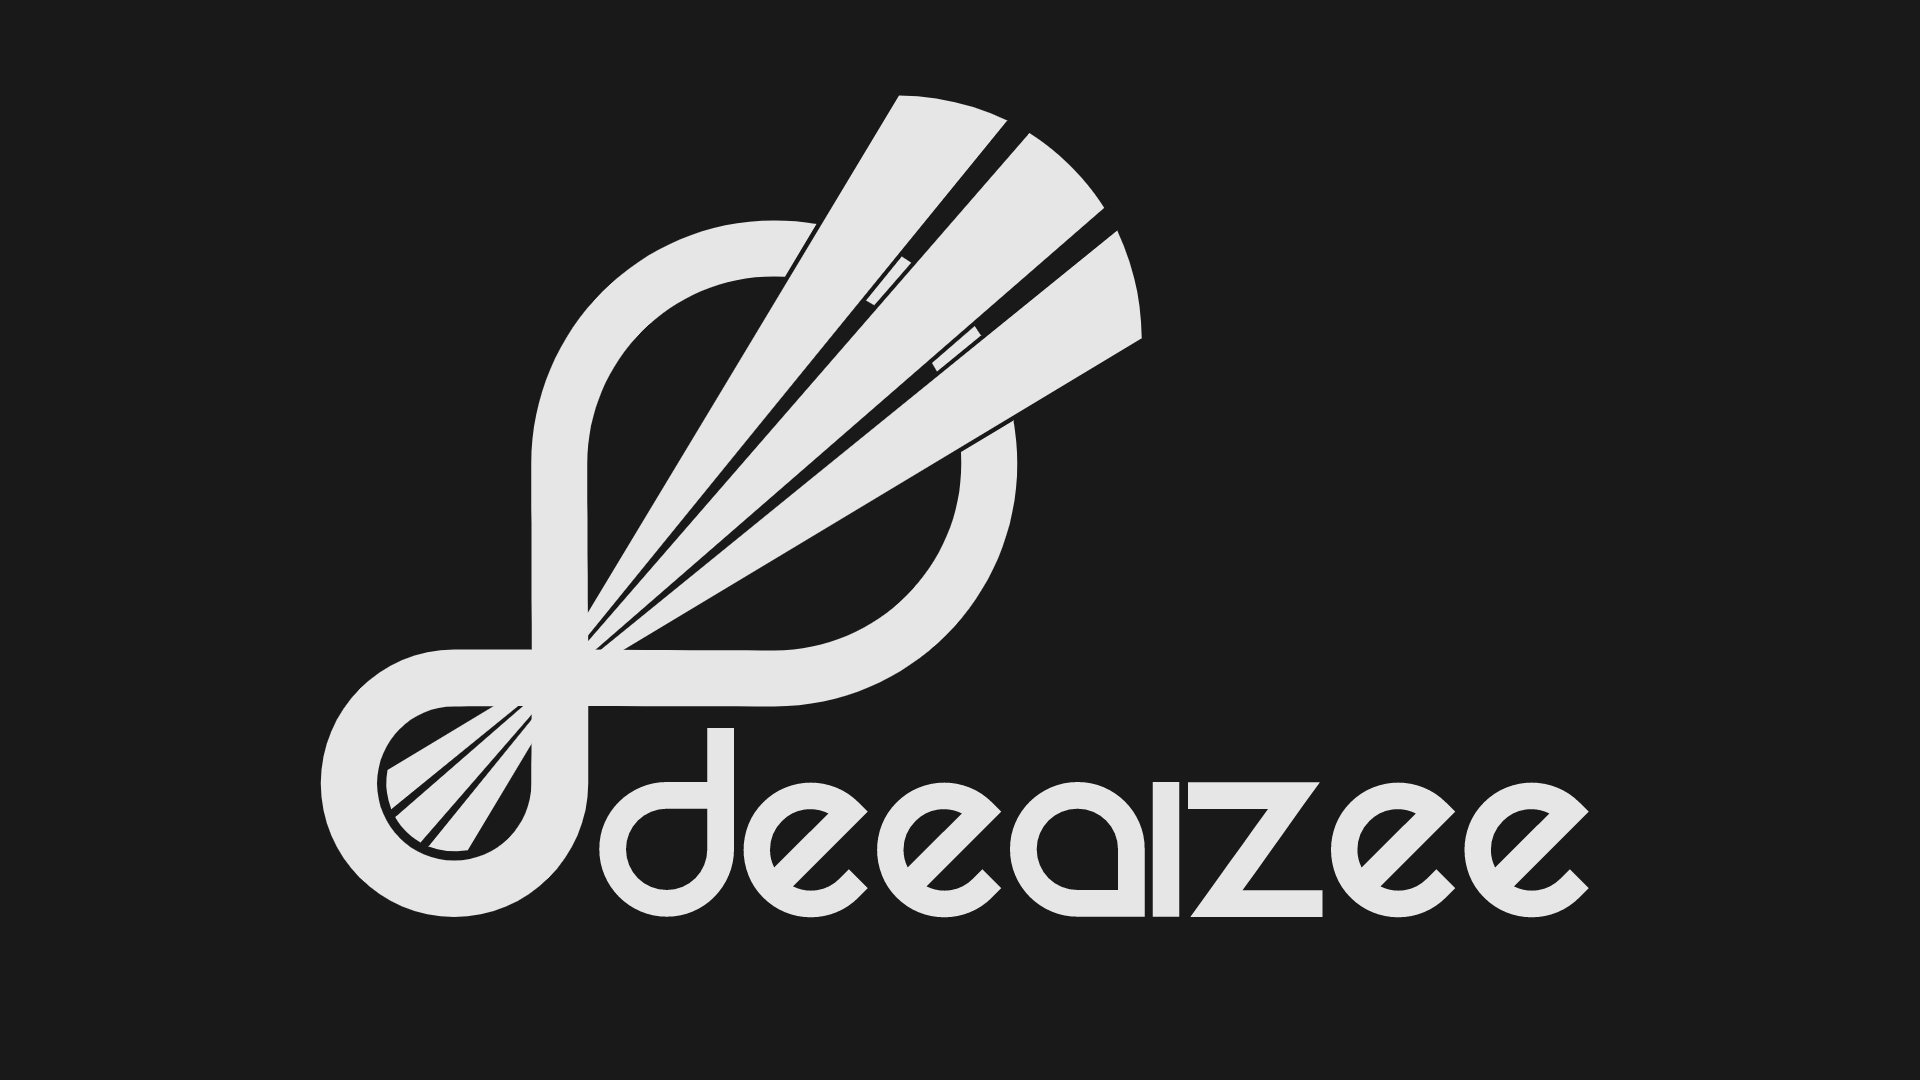 Twitch stream of DeeAiZee